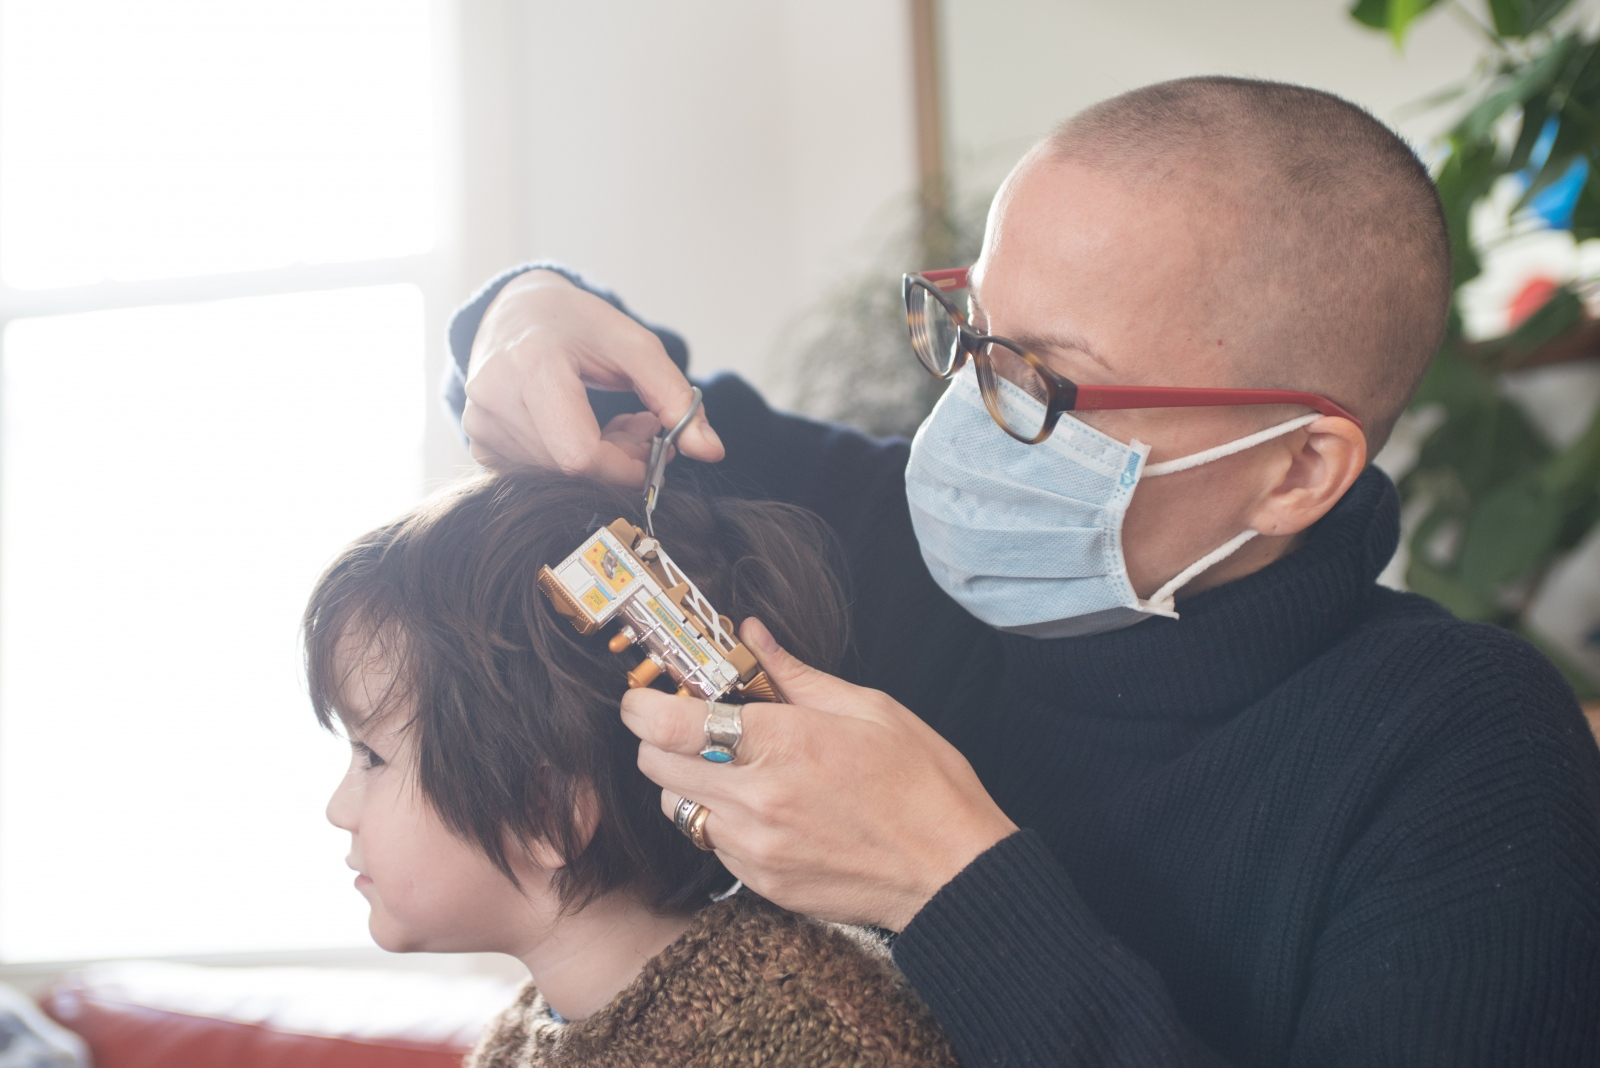 Anna cuts a toy train out of our son Jesse's hair. She must wear a surgical mask to protect her weakened immune system from catching ill from Jesse who is frequently surrounded by sick children at his daycare.